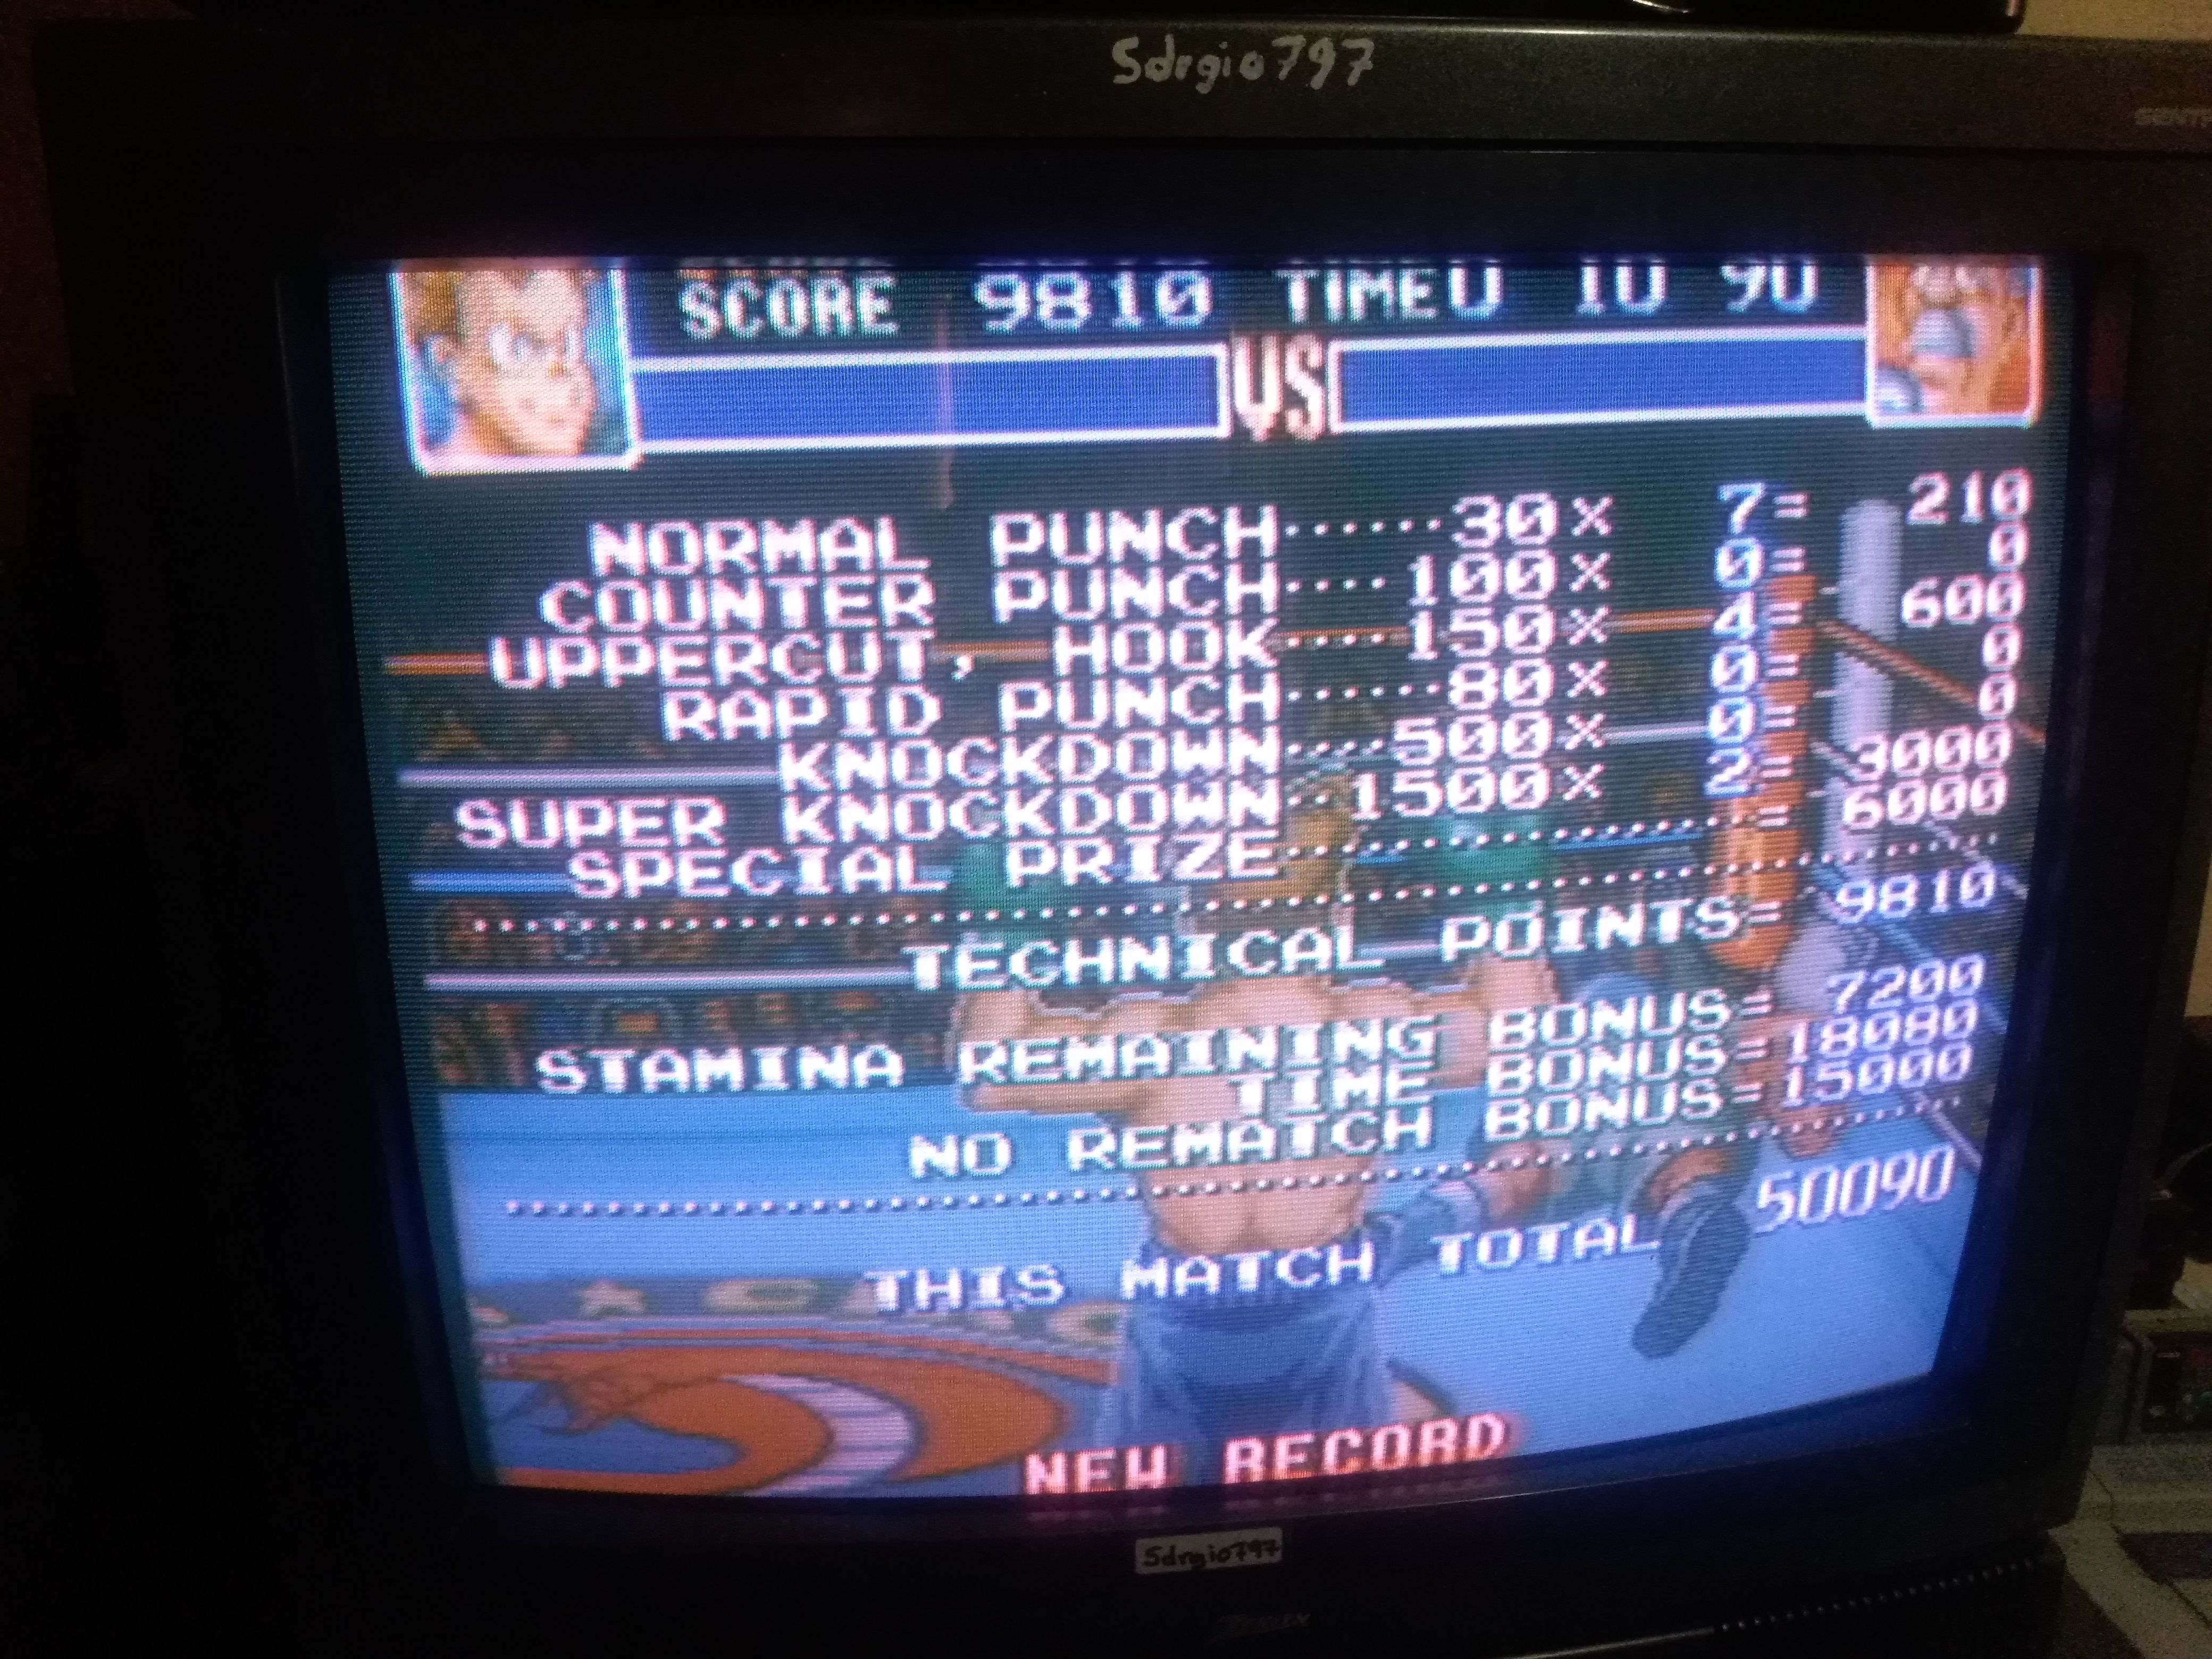 Sdrgio797: Super Punch-Out!! [Gabby Jay] (SNES/Super Famicom) 50,090 points on 2020-07-06 13:33:26